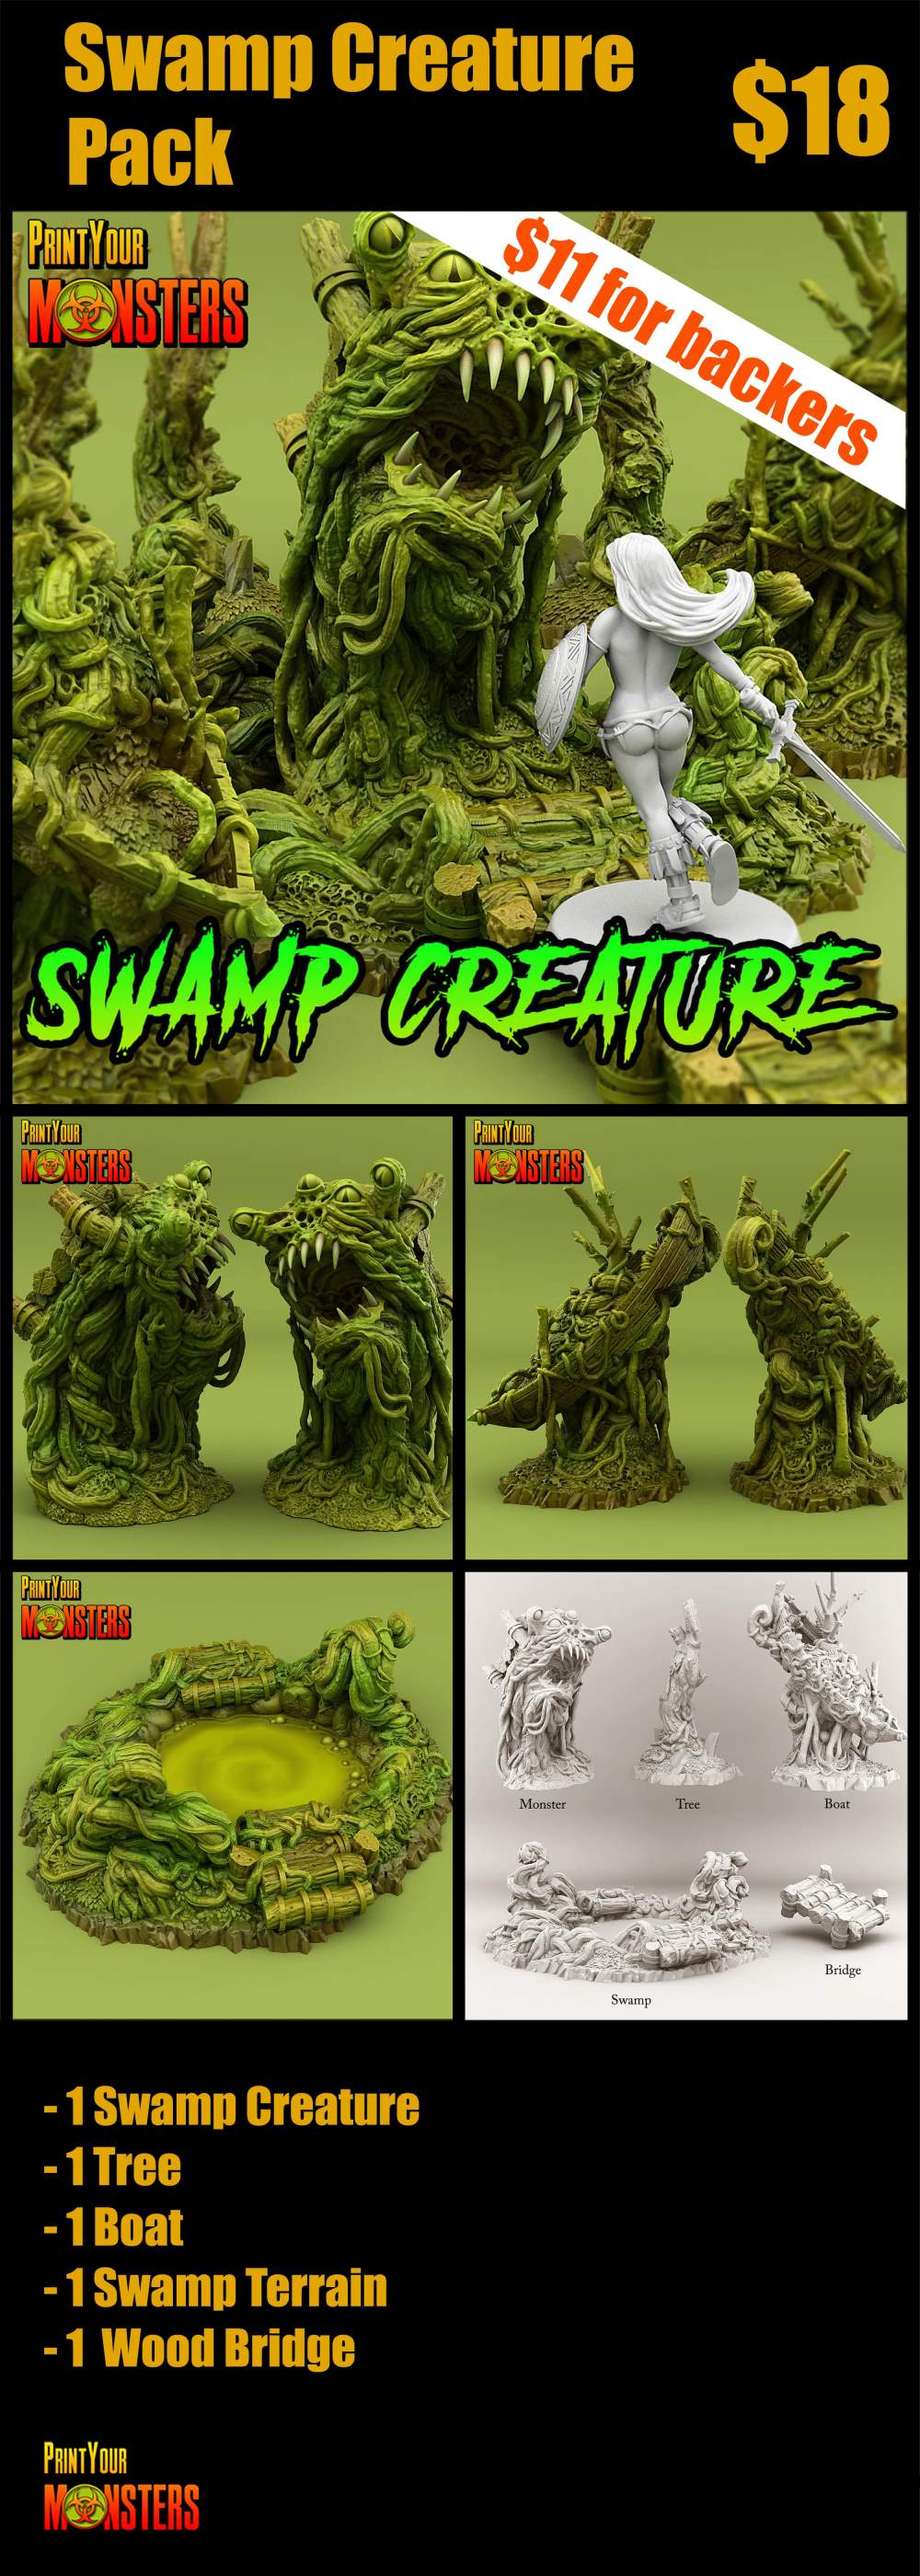 Swamp Creature Pack